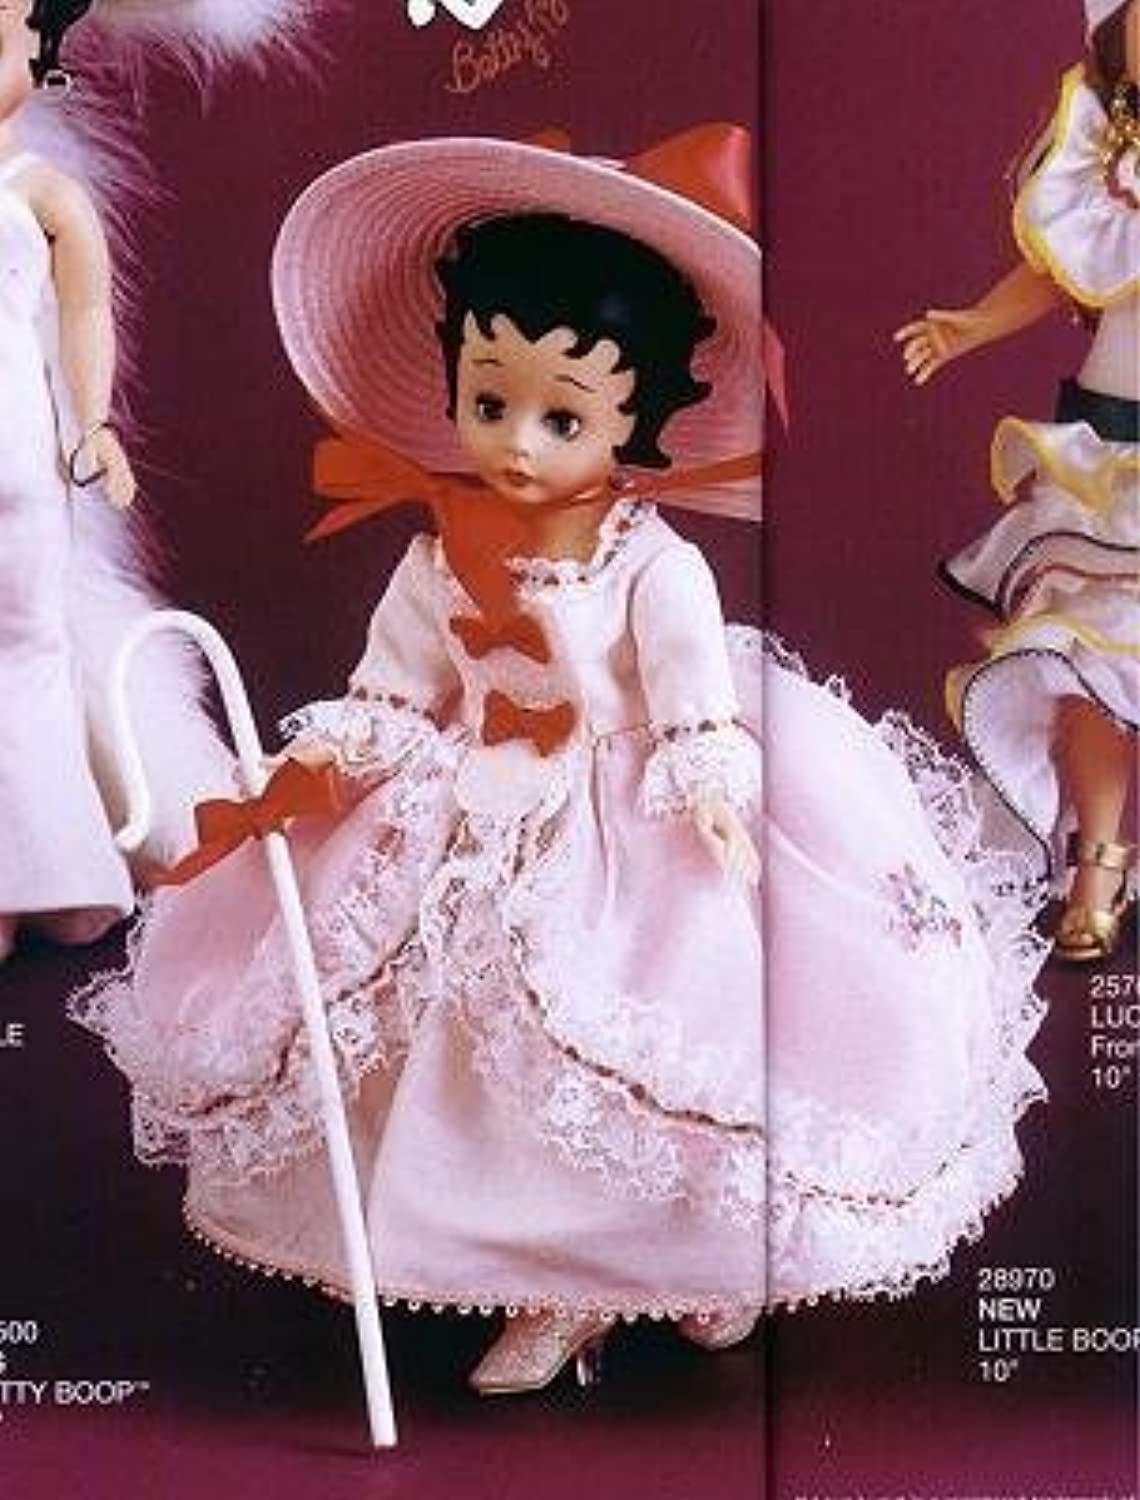 popular Little BOOP Peep (Betty Boop) by by by Madame Alexader  28970 by Madame Alexander  promocionales de incentivo